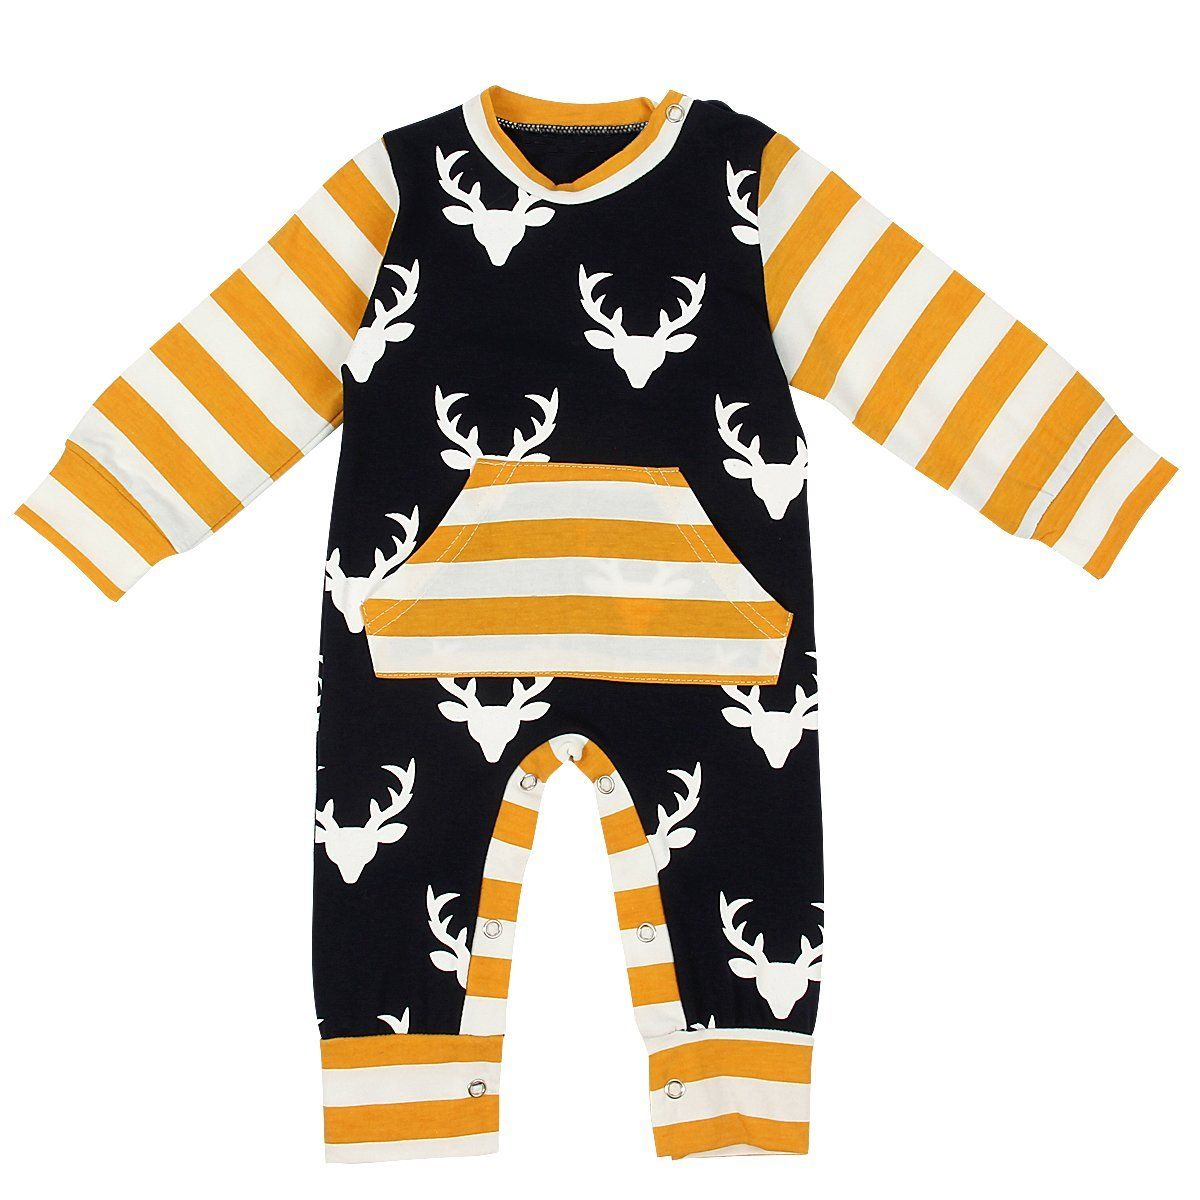 Autumn Newborn Kids Baby Boy Girl Warm Infant Long Sleeve Deer Striped Romper Cotton Jumpsuit Clothes Outfit 2017 baby girl summer romper newborn baby romper suits infant boy cotton toddler striped clothes baby boy short sleeve jumpsuits